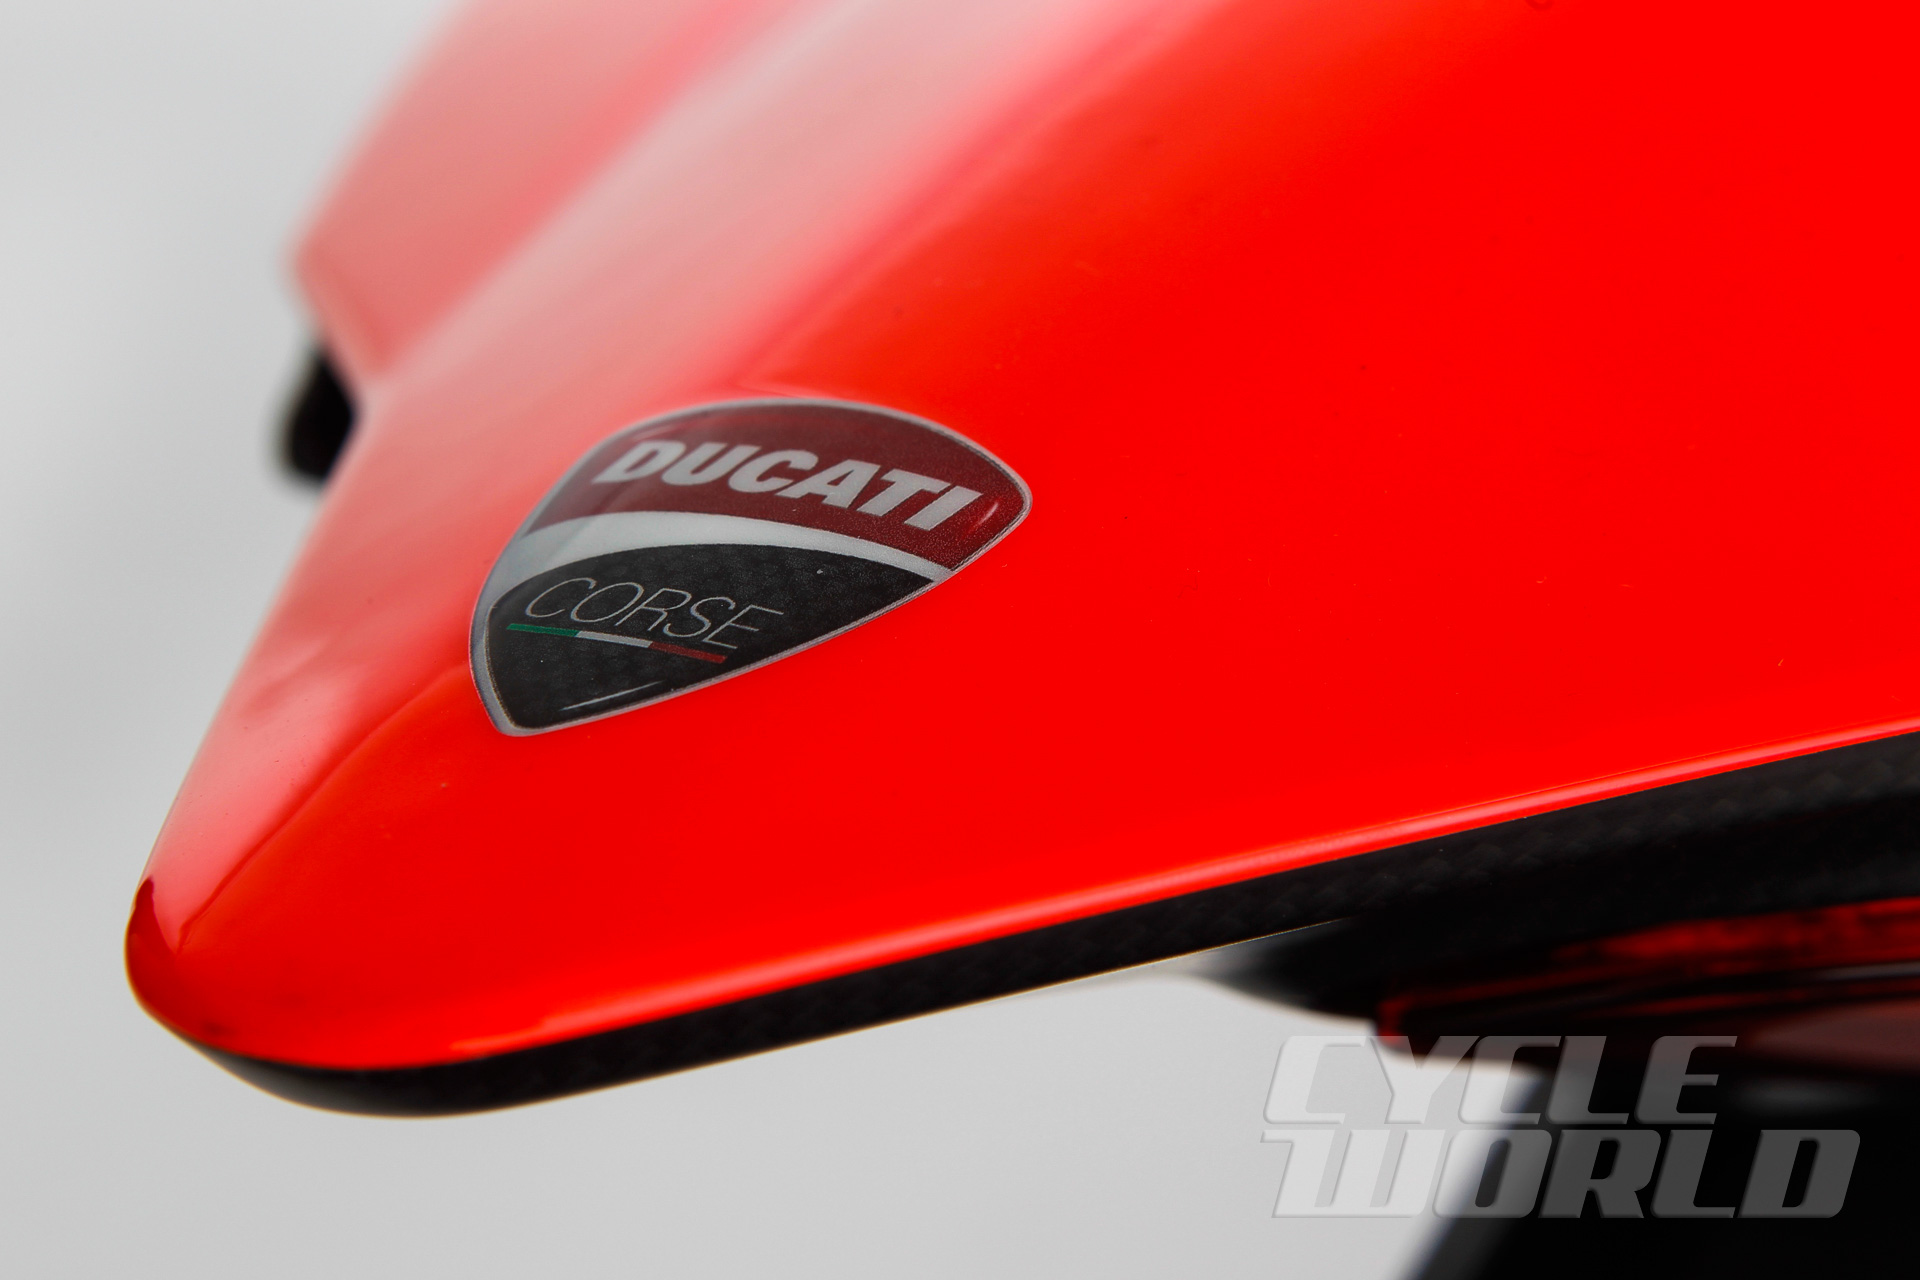 Ducati-Superleggera-detail-311.jpg